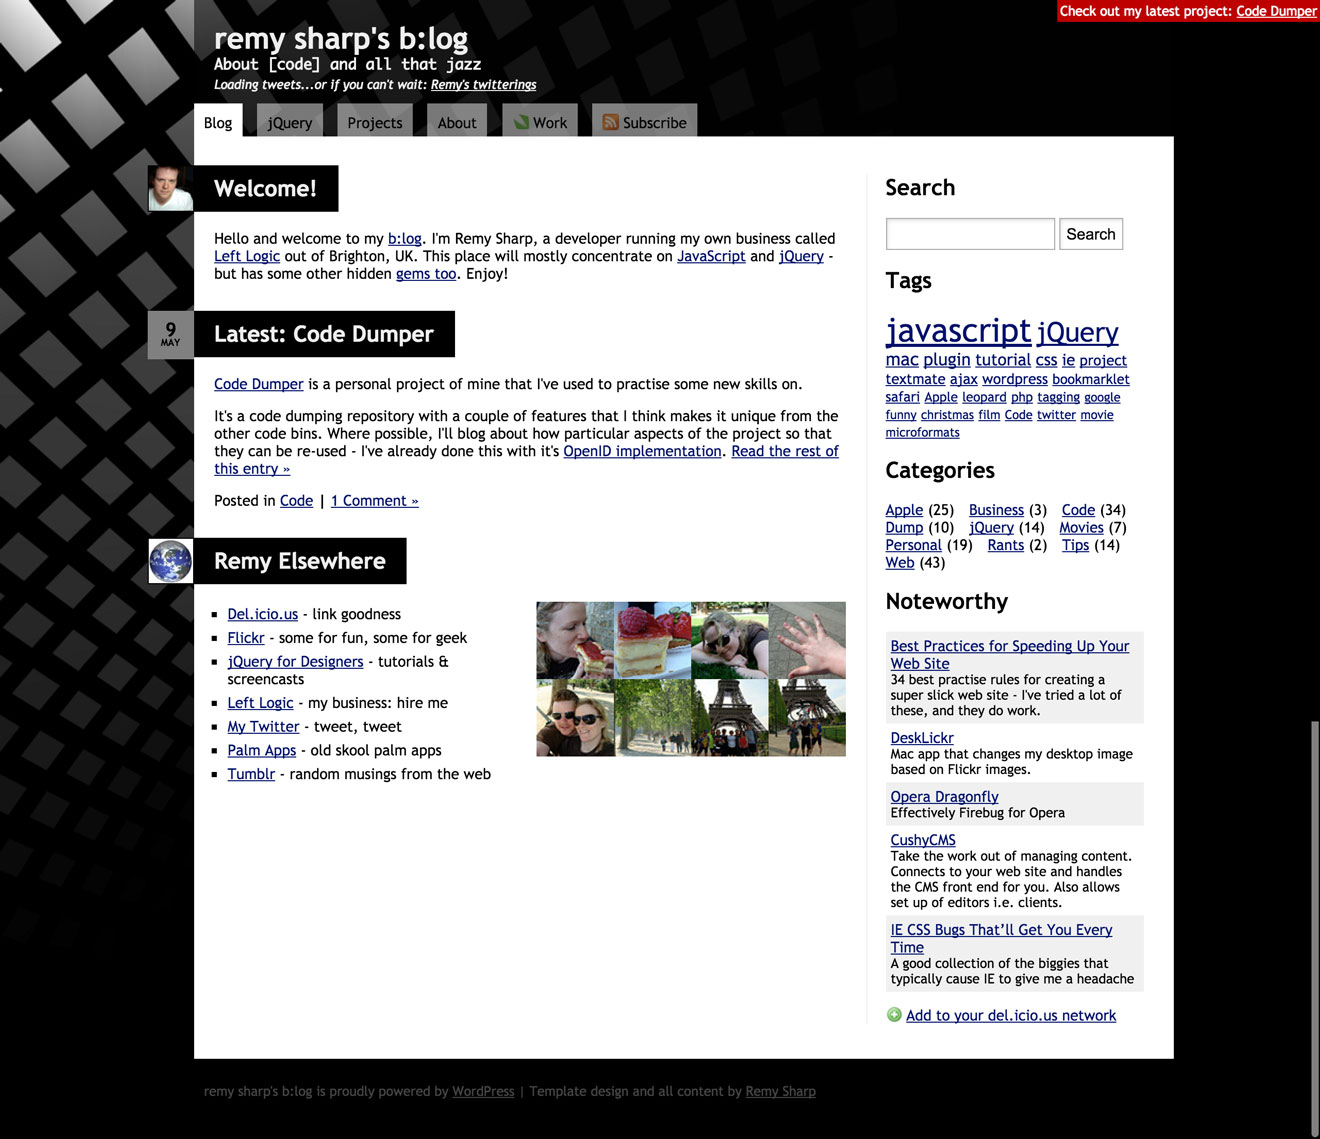 Screenshot of my blog from 2008